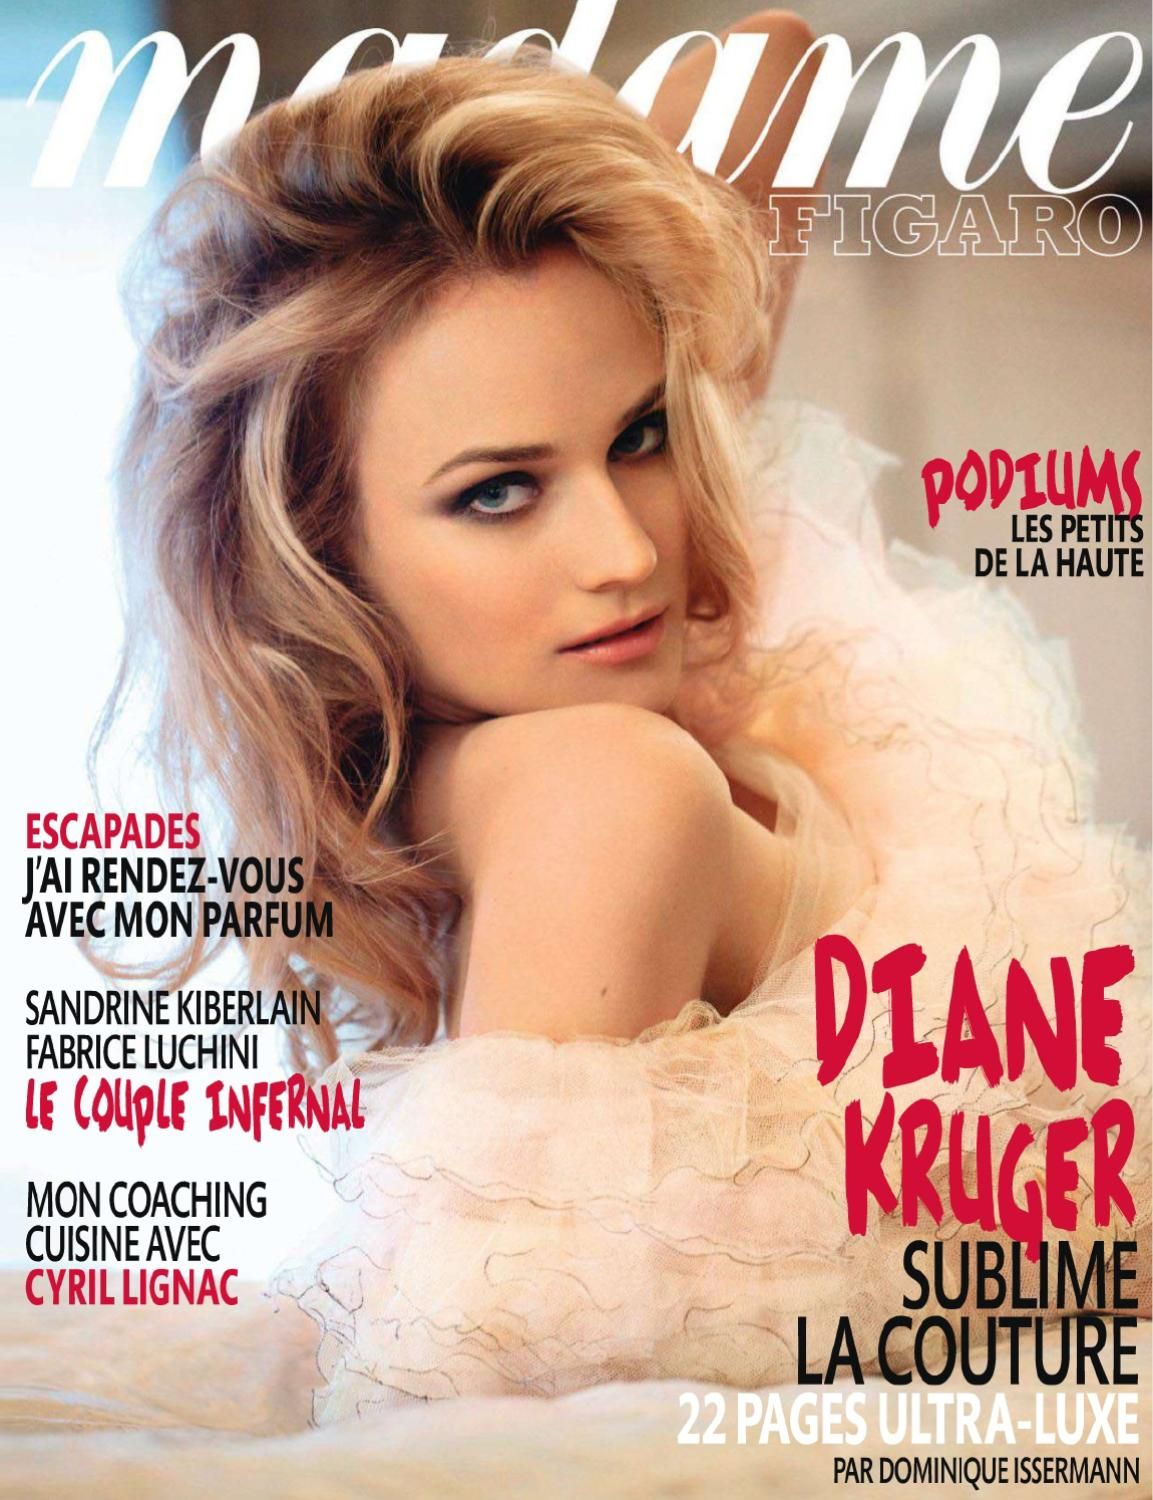 fd28ef0c3 Diane Kruger by Dominique Issermannd for Madame Figaro France February 2011